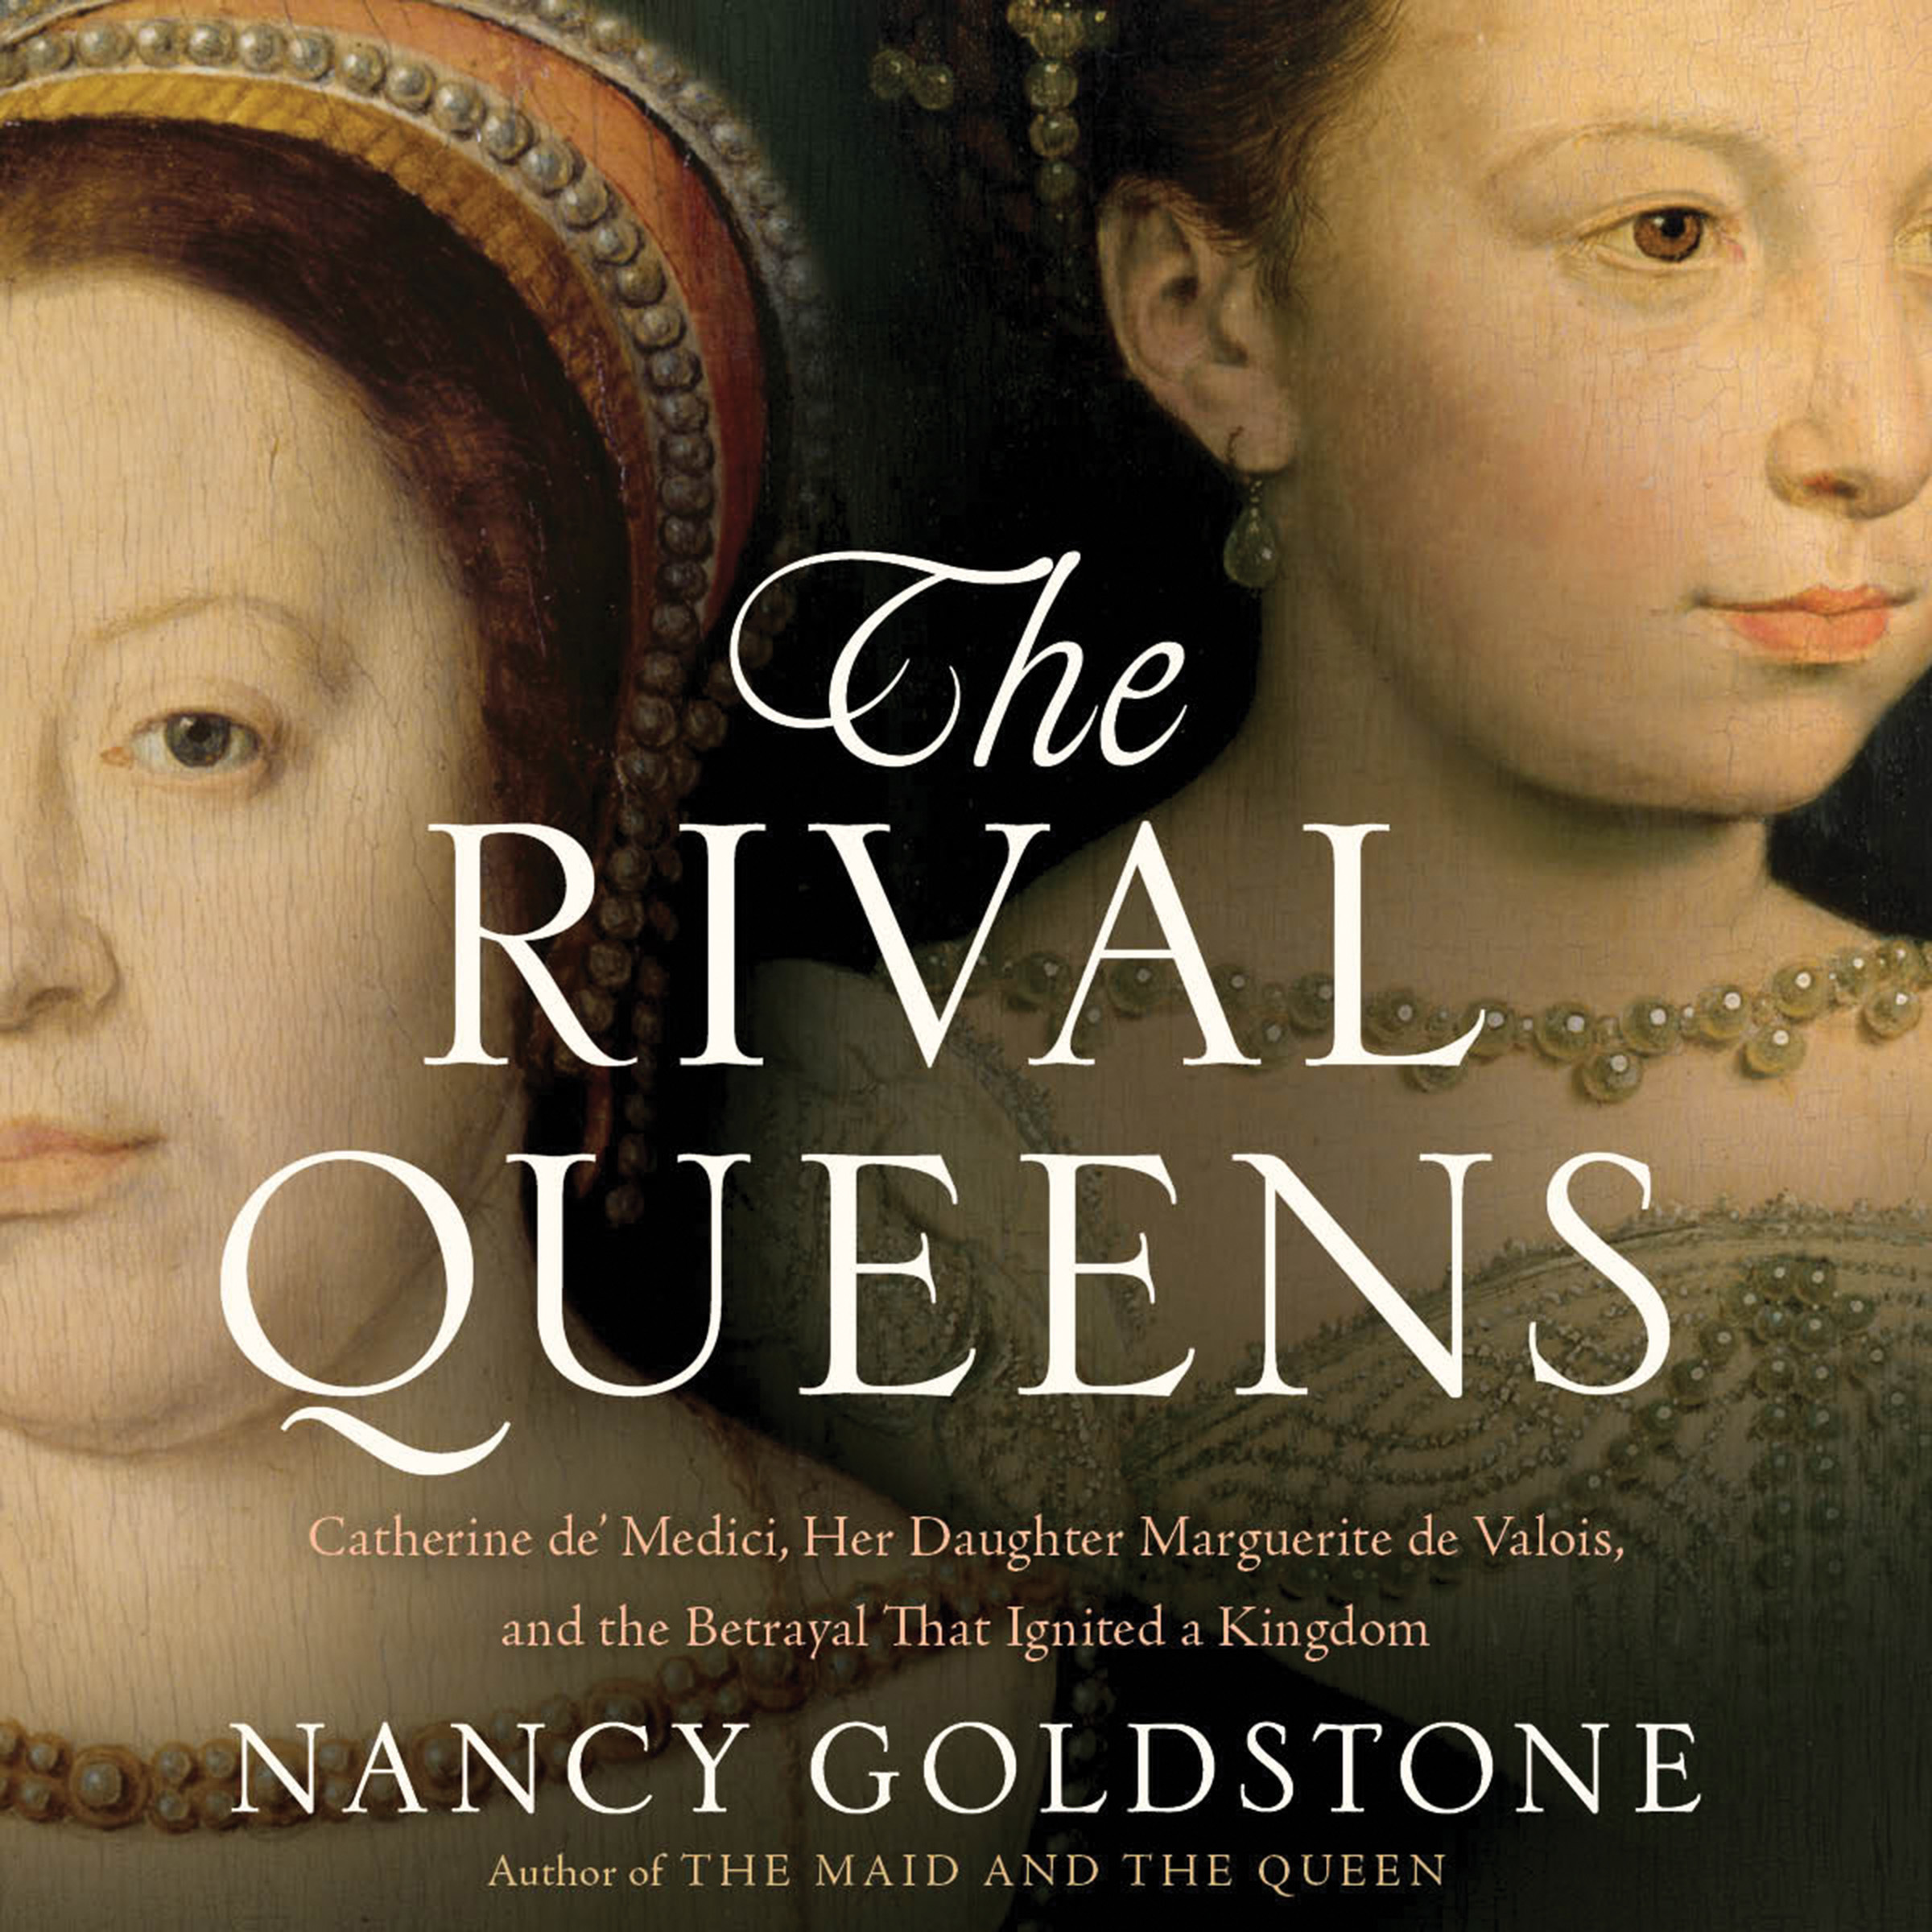 Printable The Rival Queens: Catherine de' Medici, Her Daughter Marguerite de Valois, and the Betrayal That Ignited a Kingdom Audiobook Cover Art